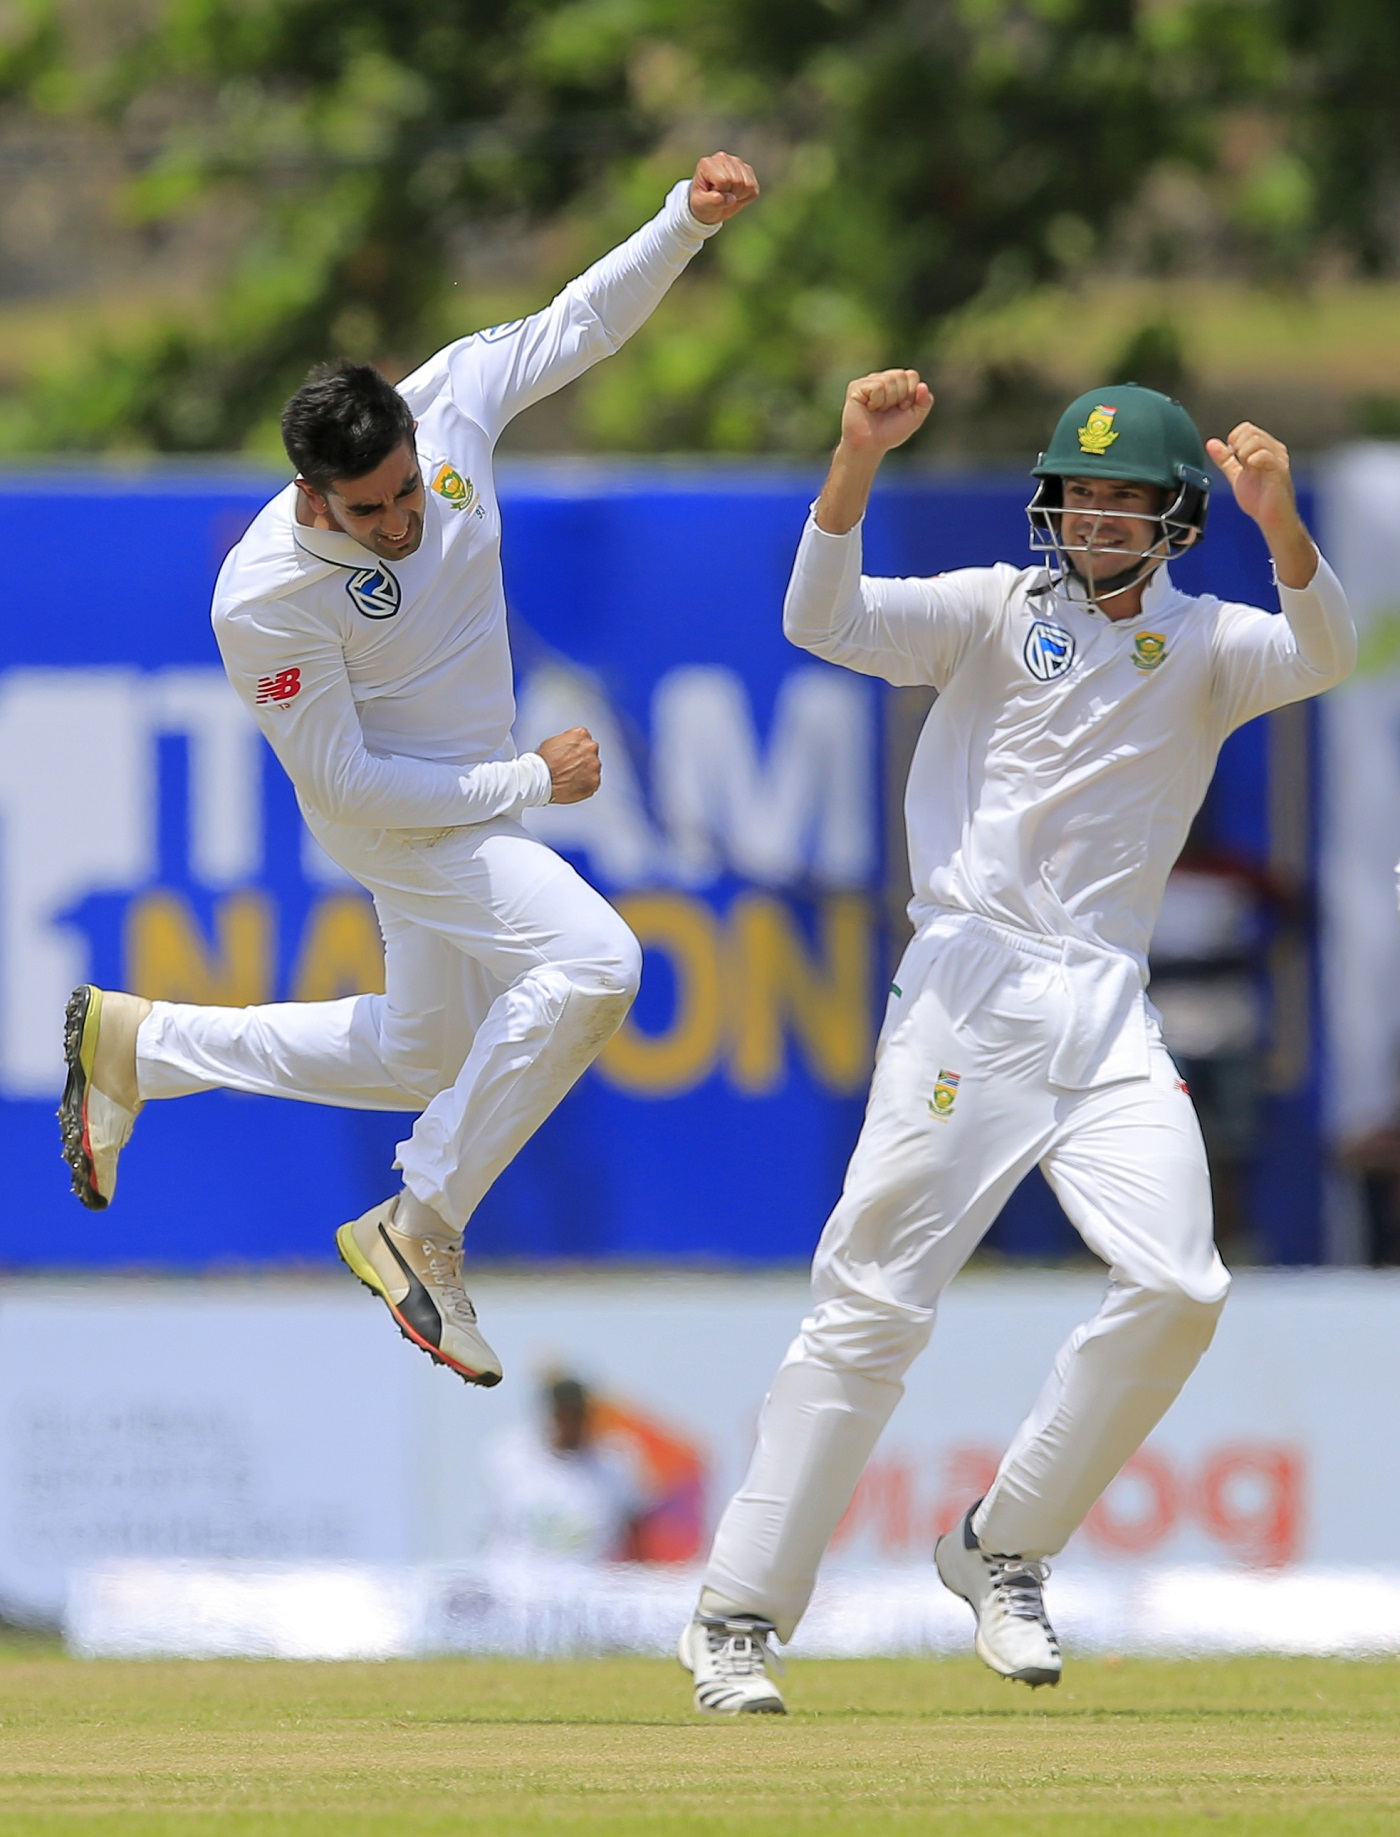 Tabraiz Shamsi celebrates a wicket in Galle in 2018 - his second Test, which came two years after his first